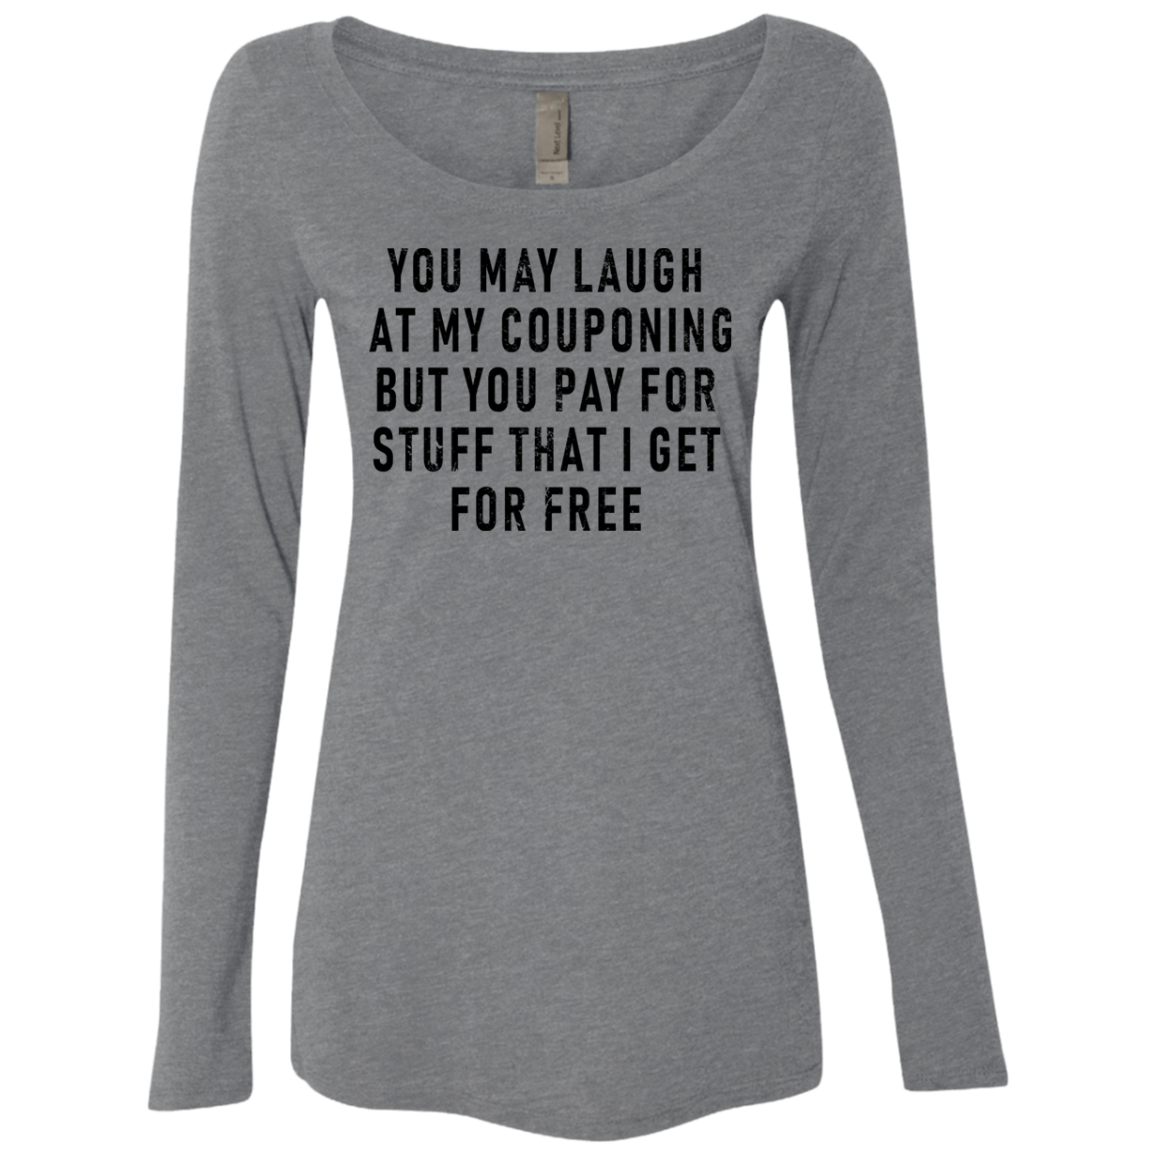 You May Laugh At My Couponing But You Pay For Stuff I Get For Free Women's Long Sleeve Tee